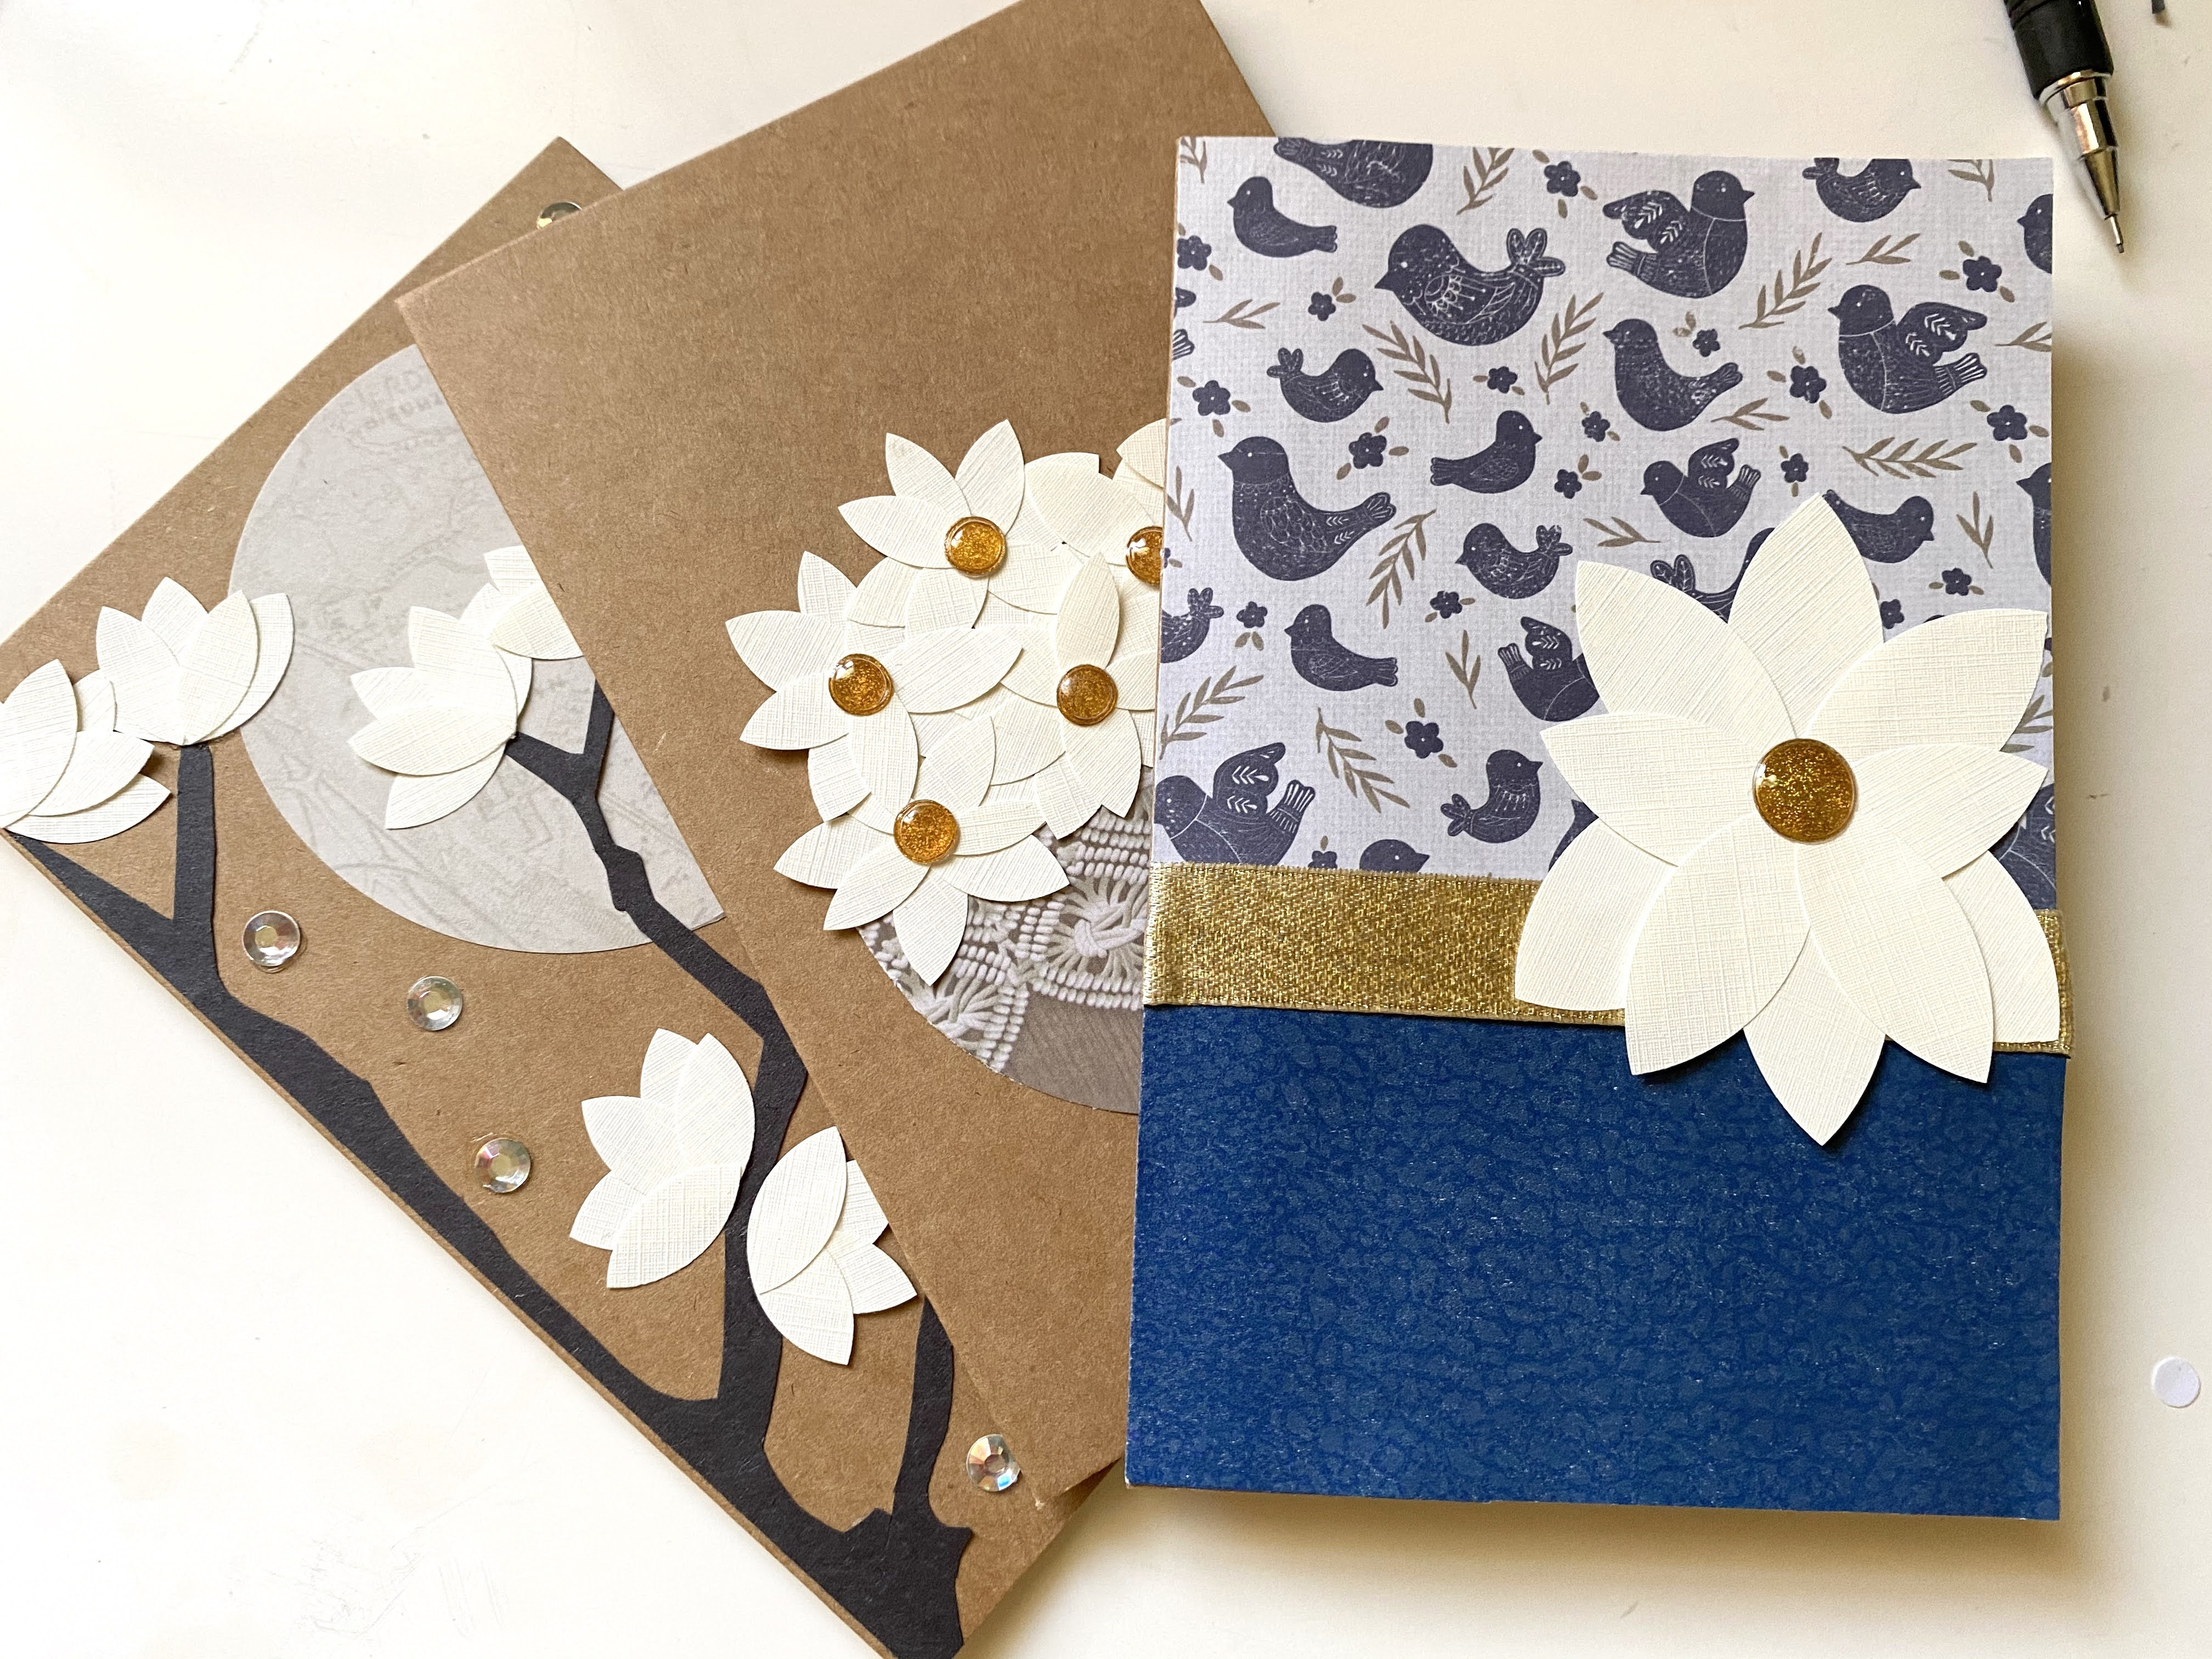 A set of homemade magnolia flower cards made from paper, ribbons, rhinestones, and glittered dots.